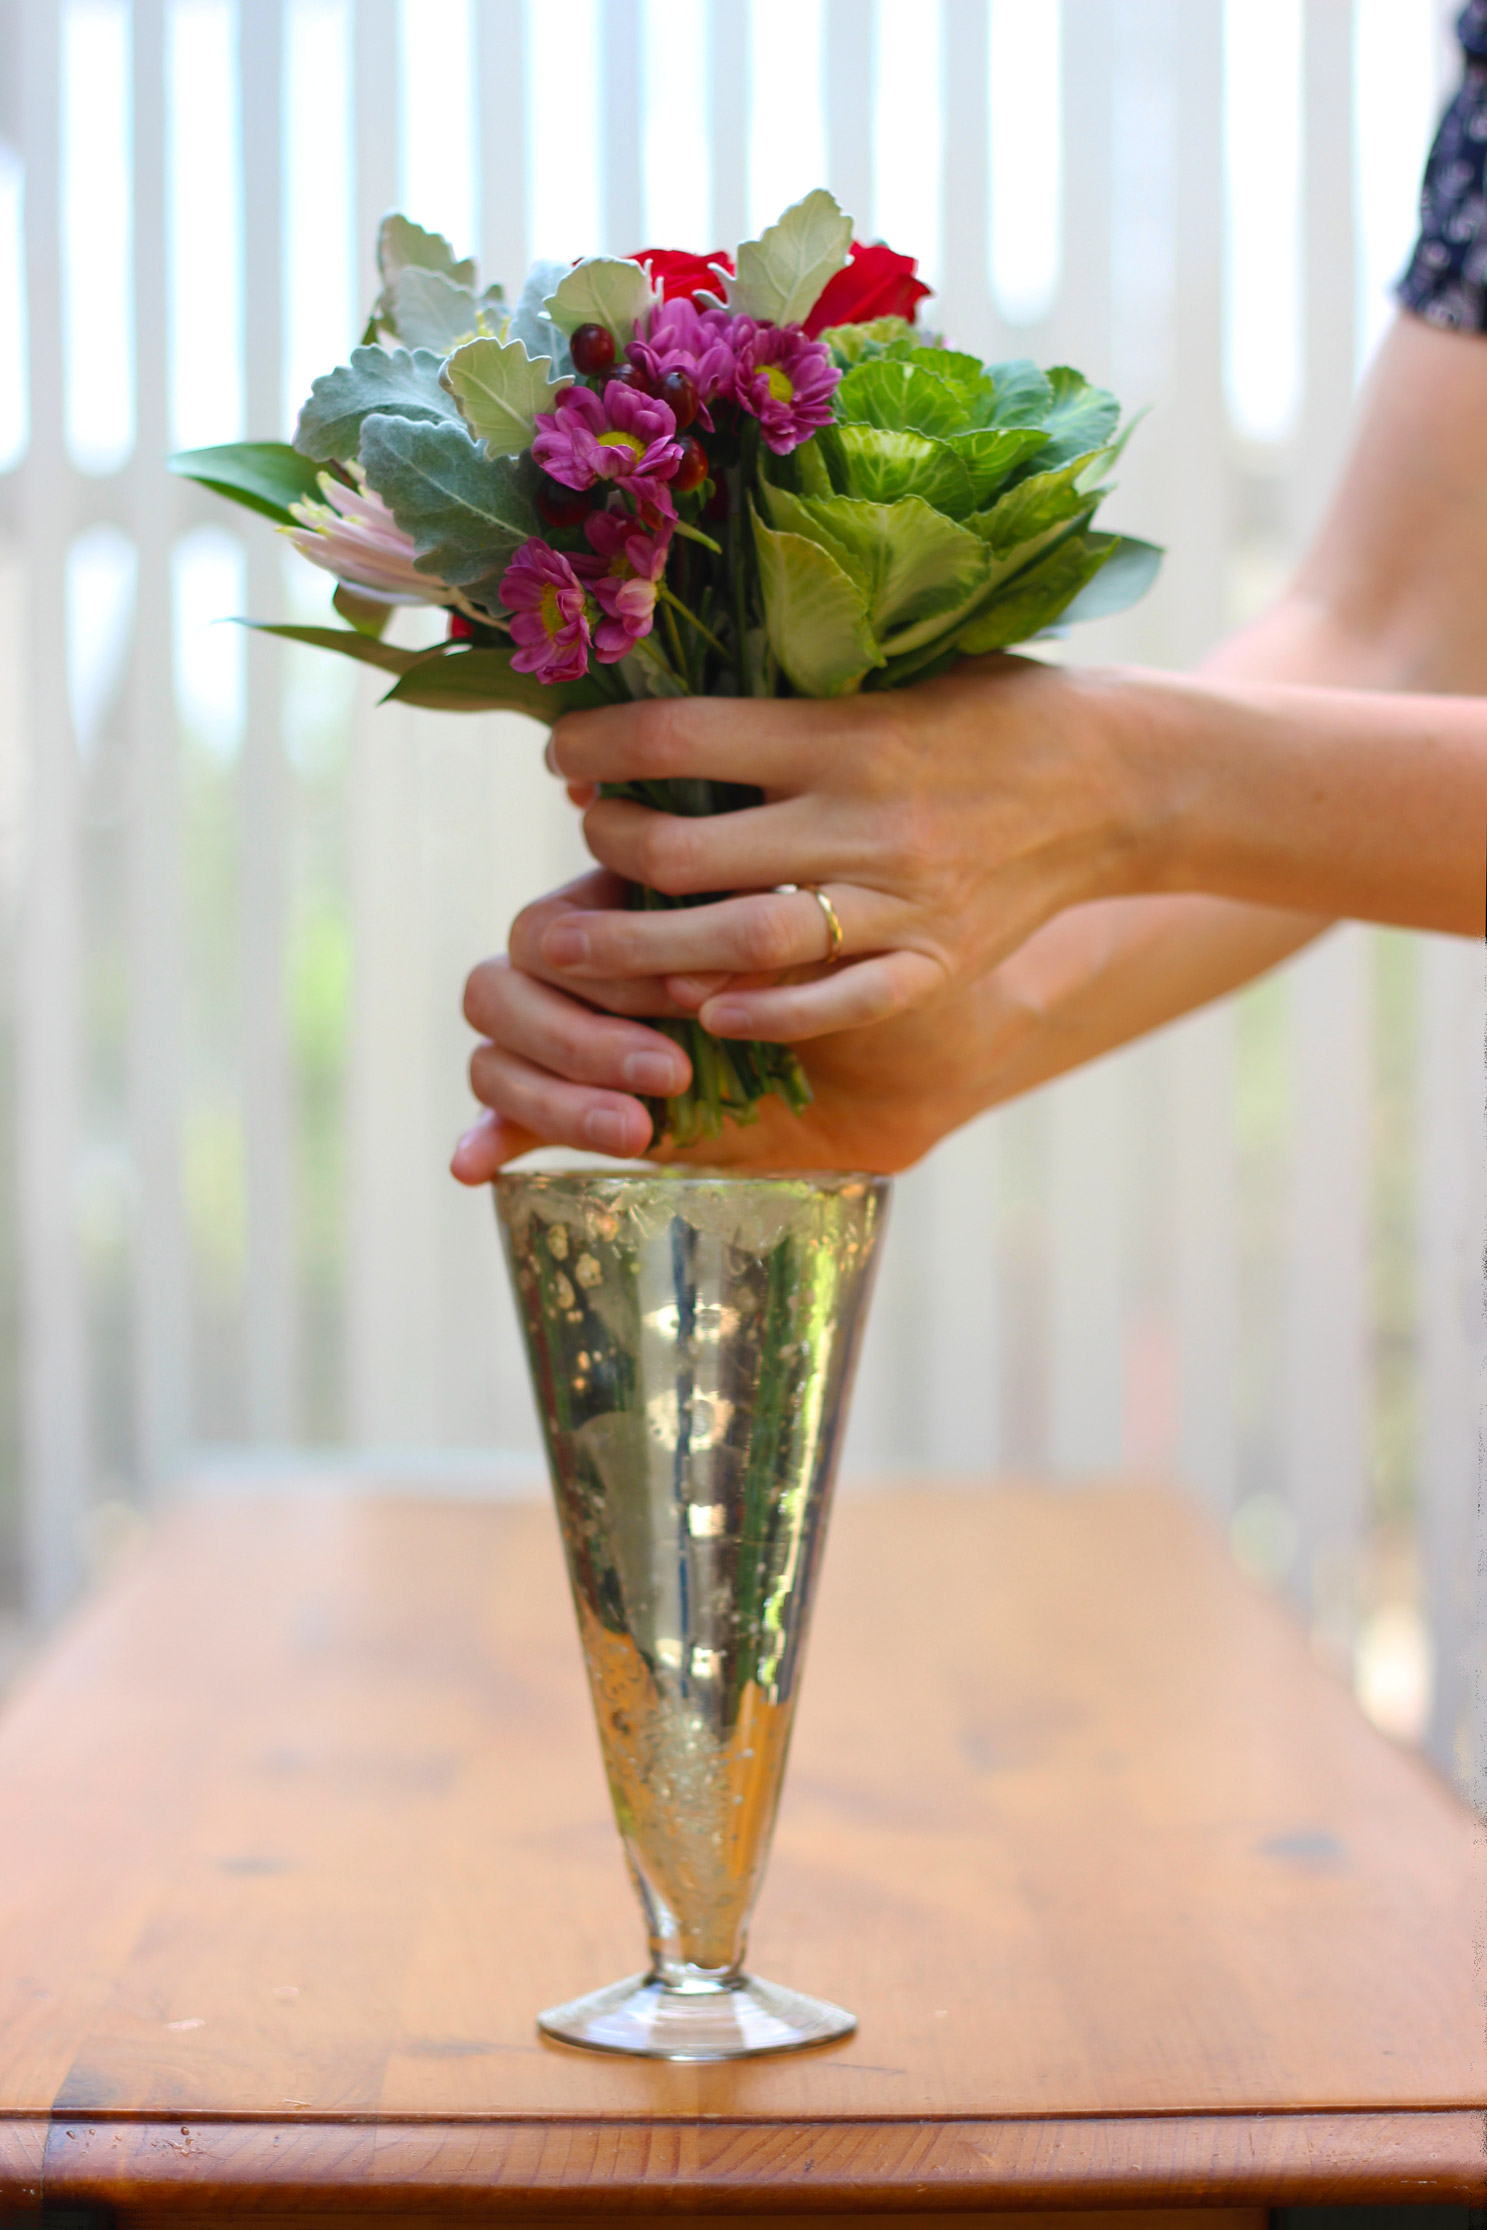 Keep bunch in place and slide into vase.